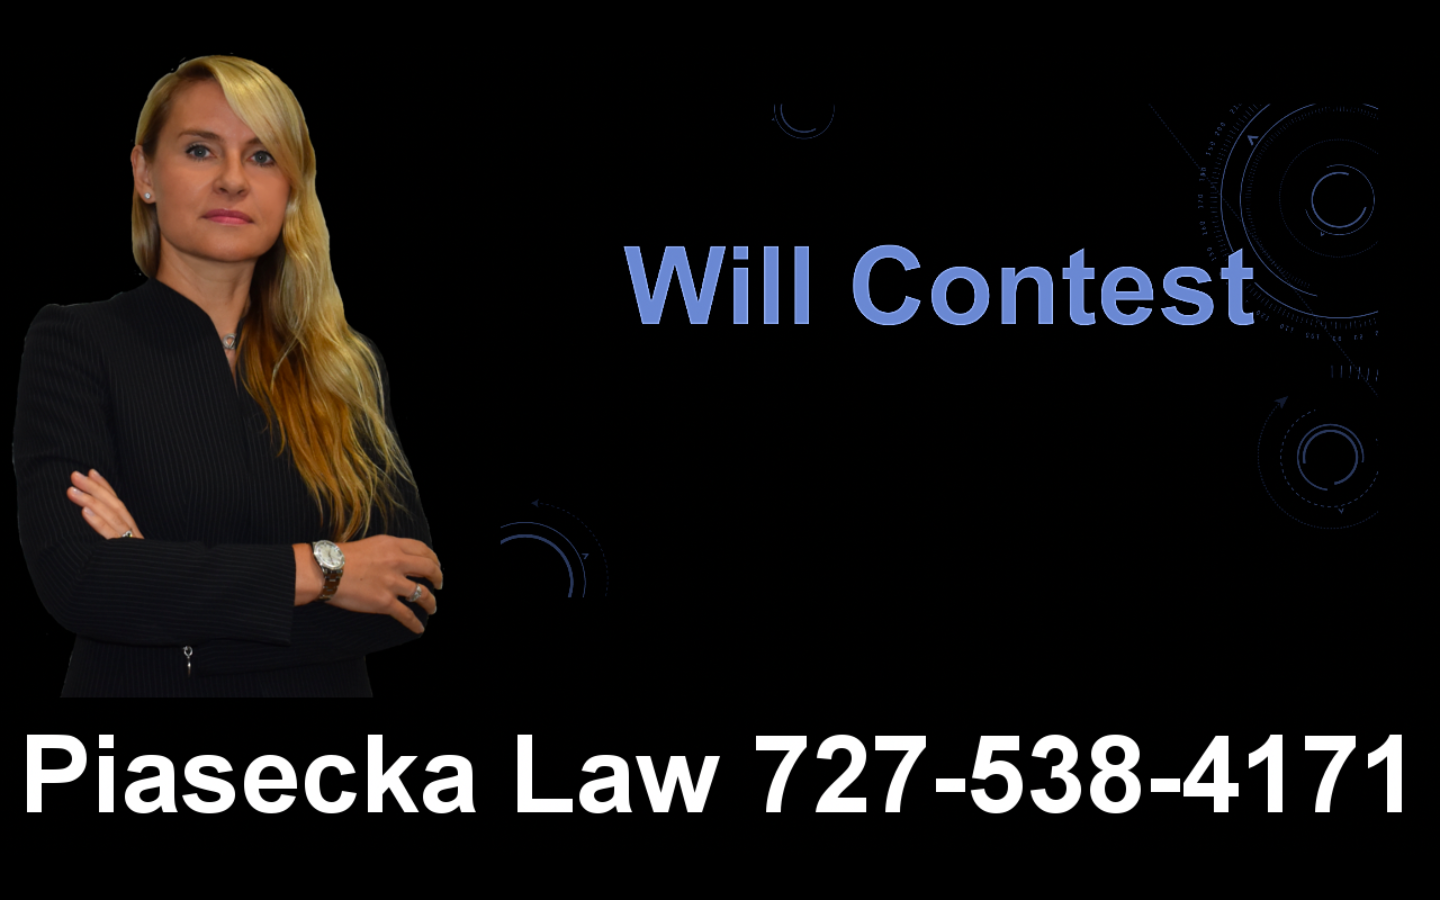 Will Contest, Clearwater, Florida, Lawyer, Attorney, Agnieszka, Aga, Piasecka